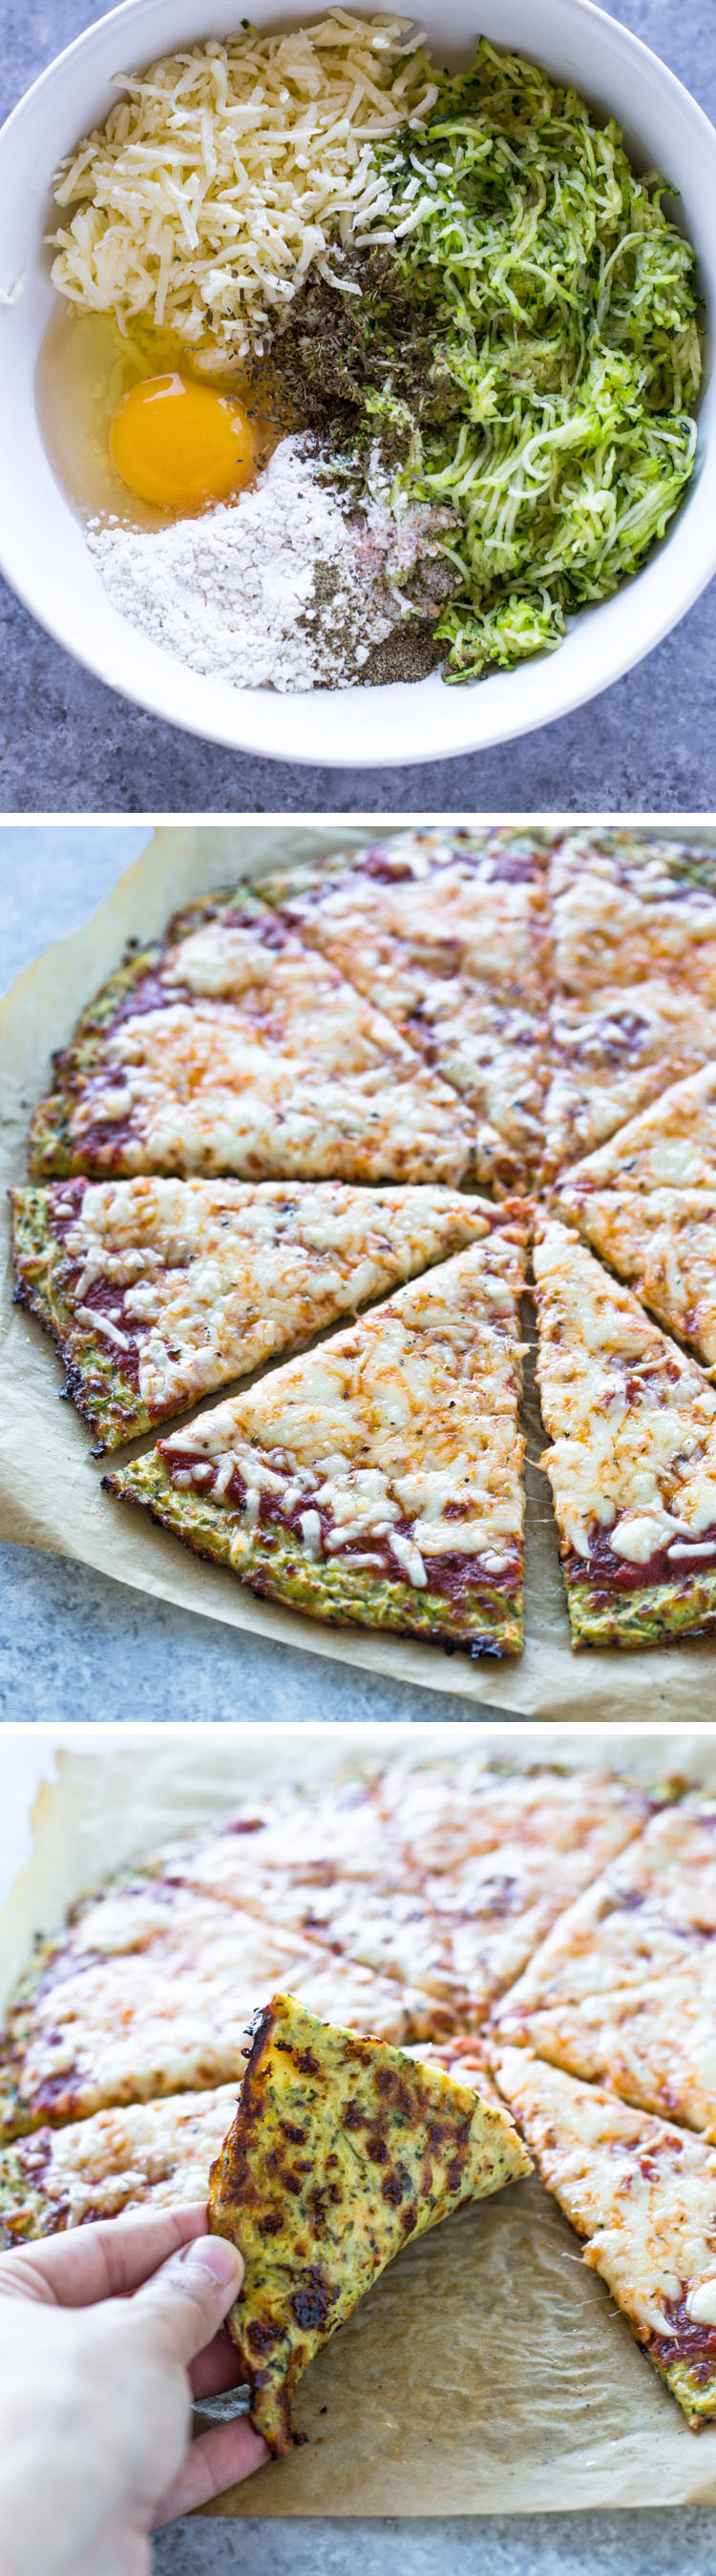 Low-Carb Zucchini Crust pizza